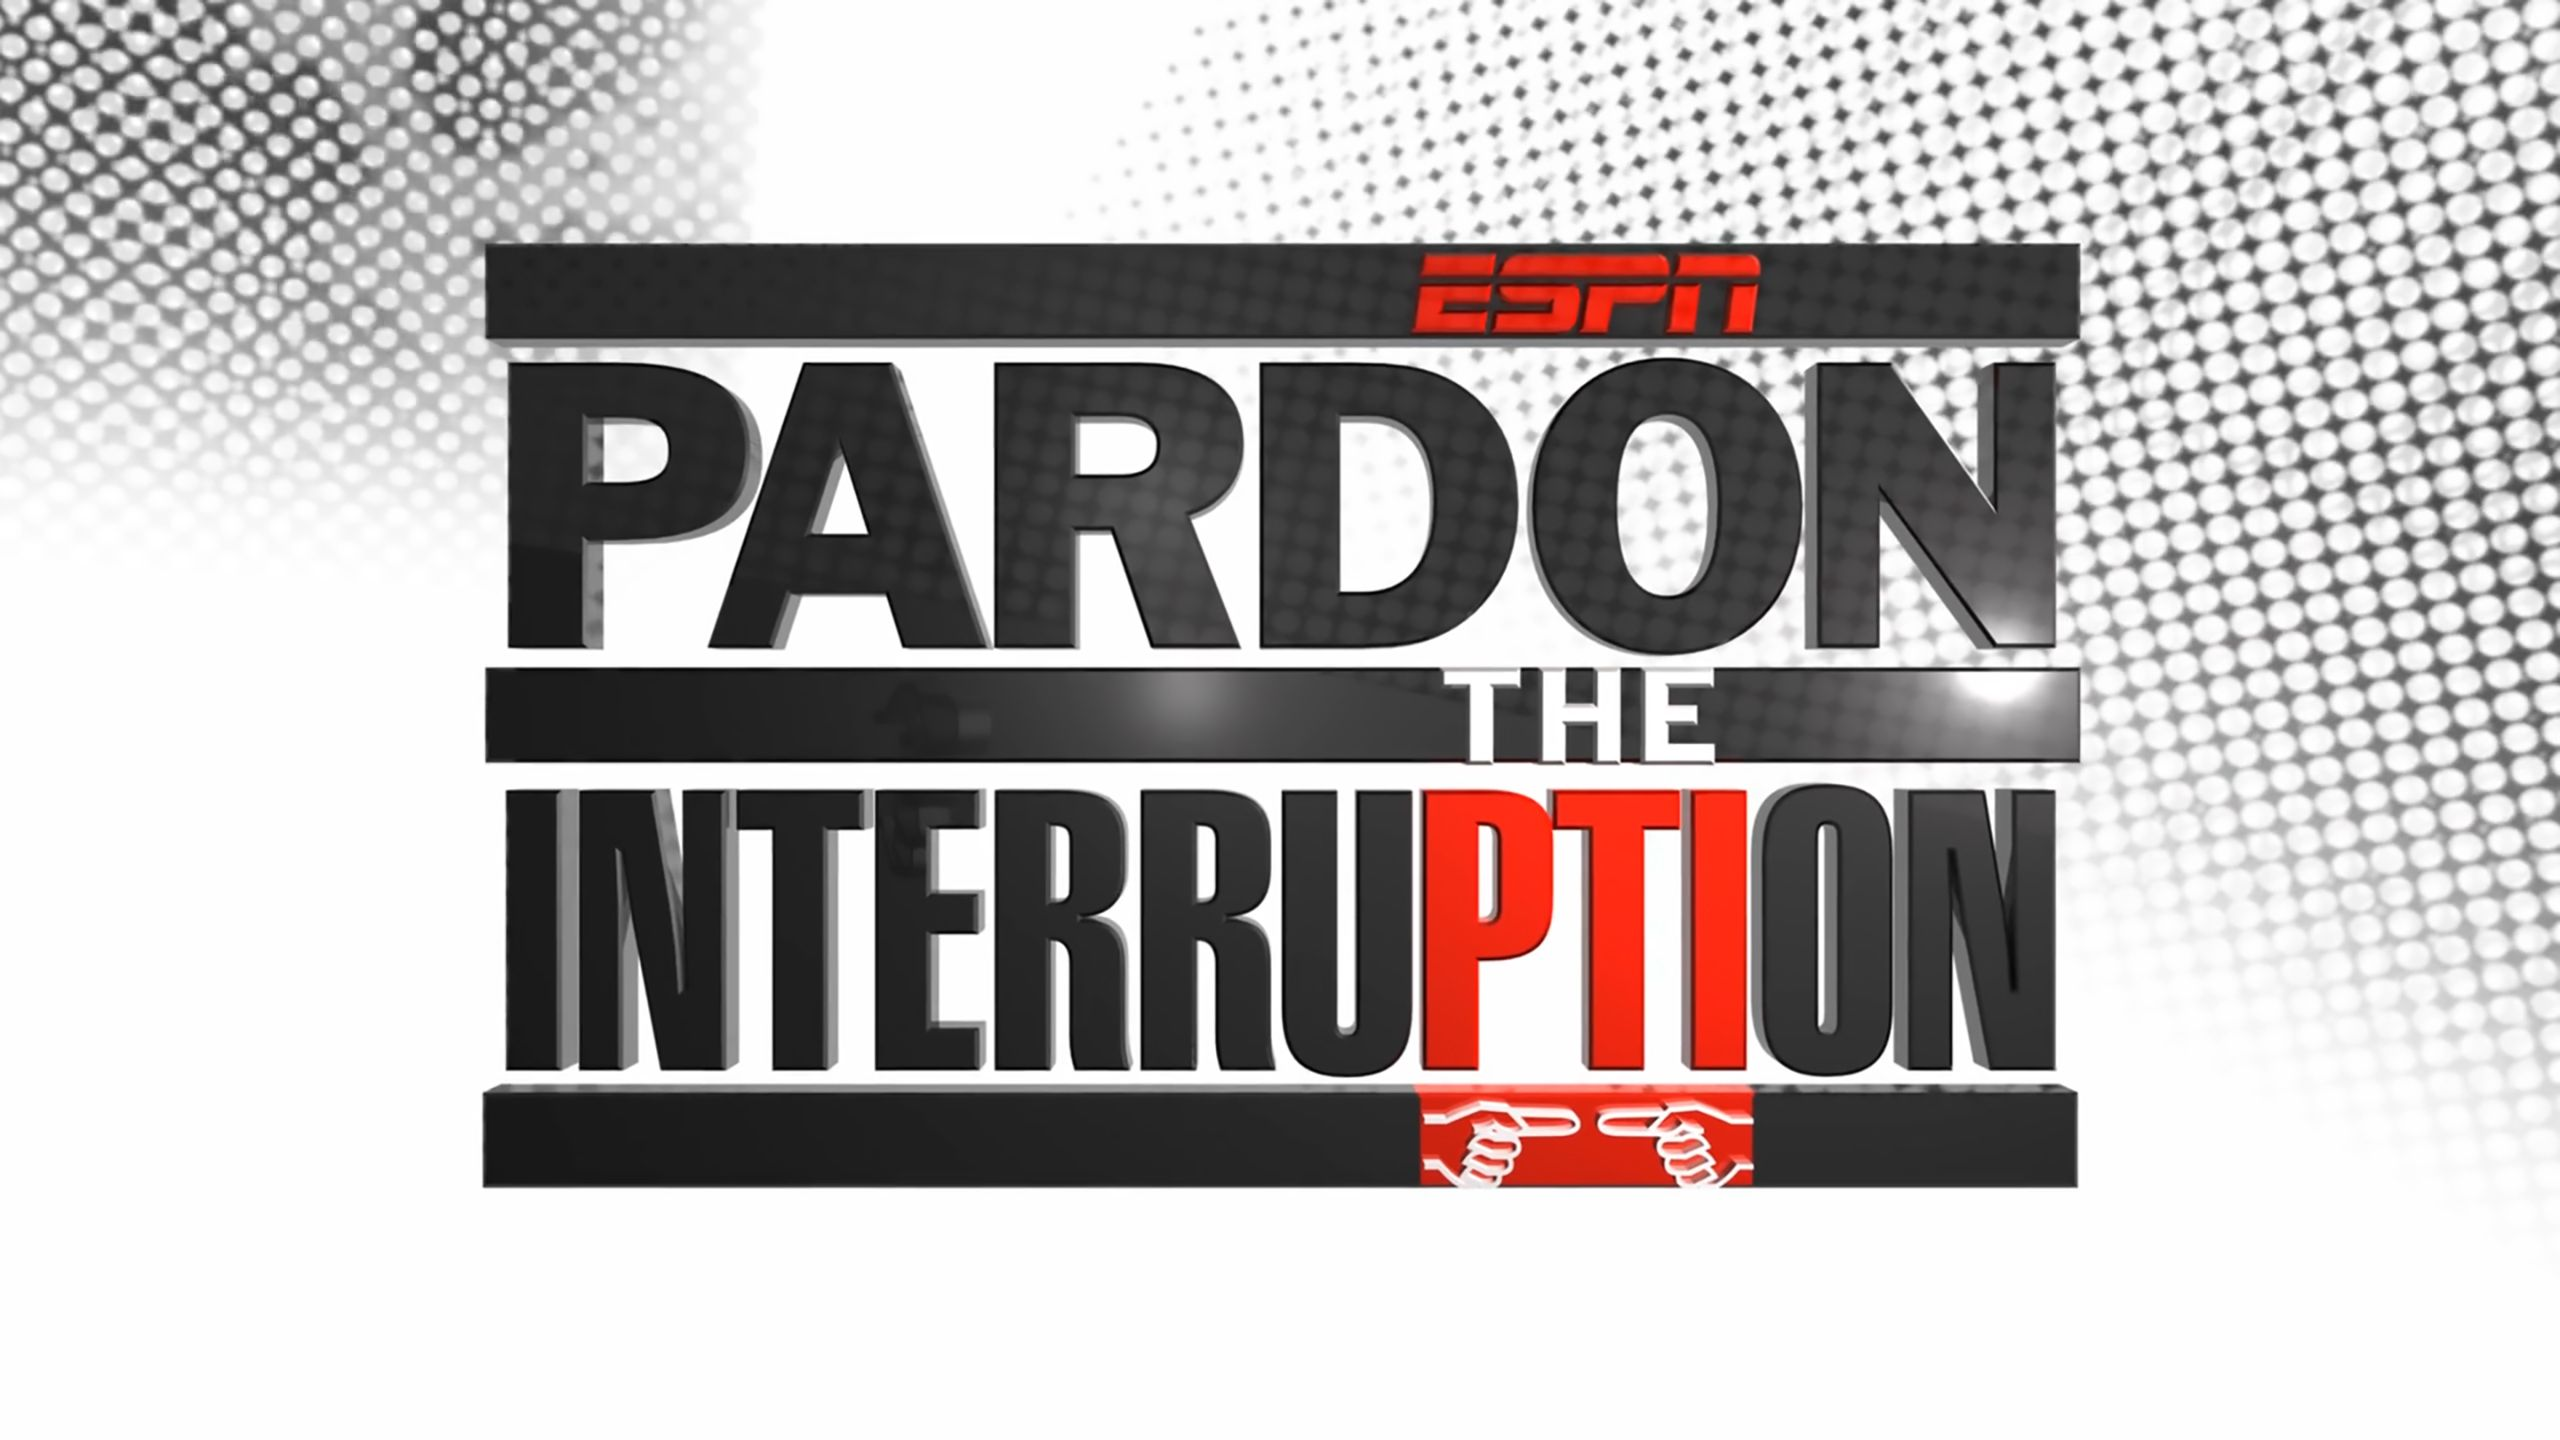 Mon, 2/19 - Pardon The Interruption